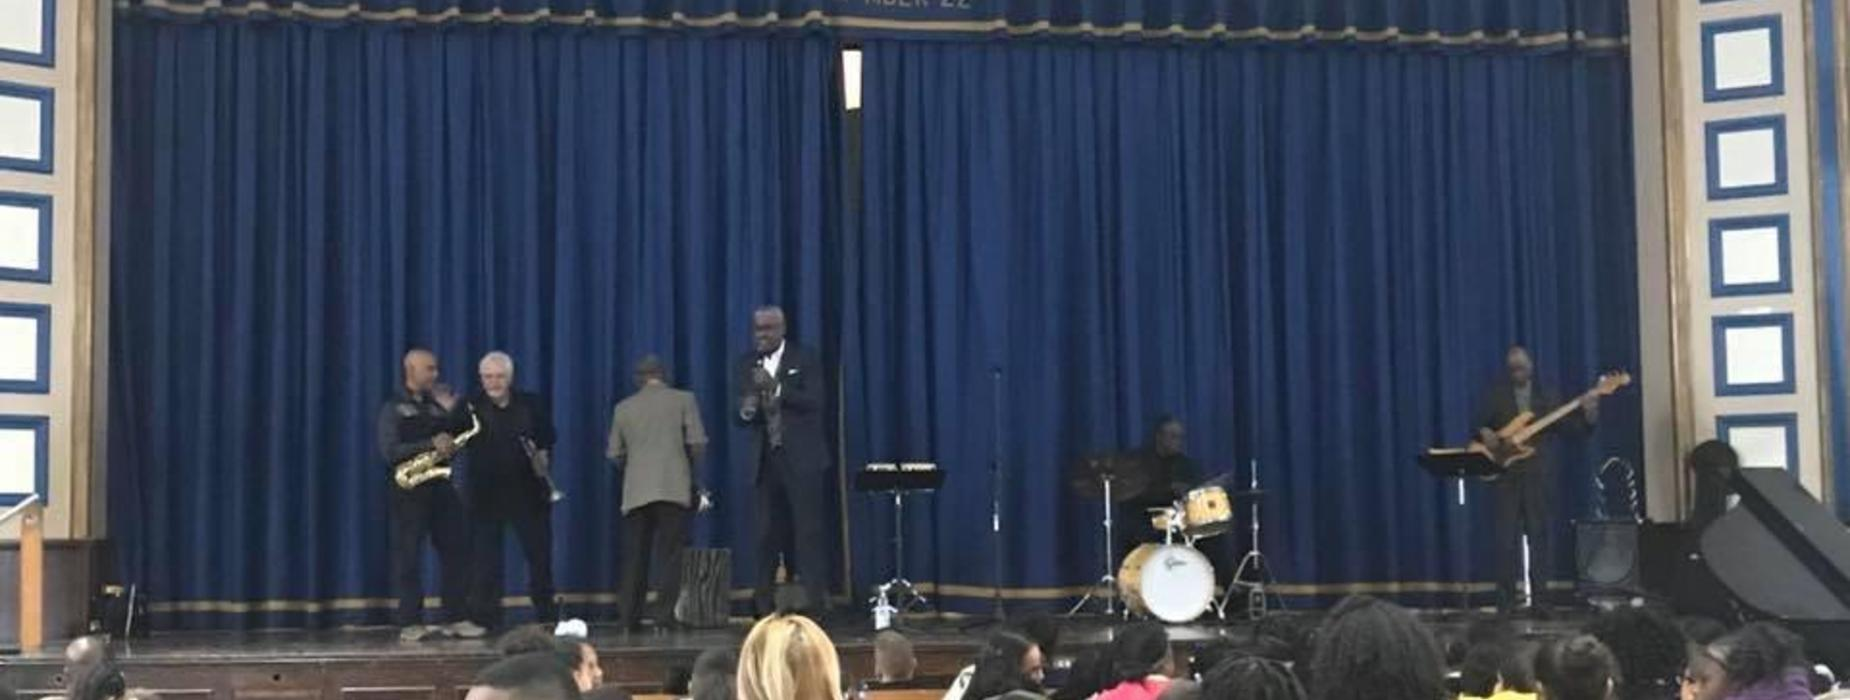 PS 22 Assembly